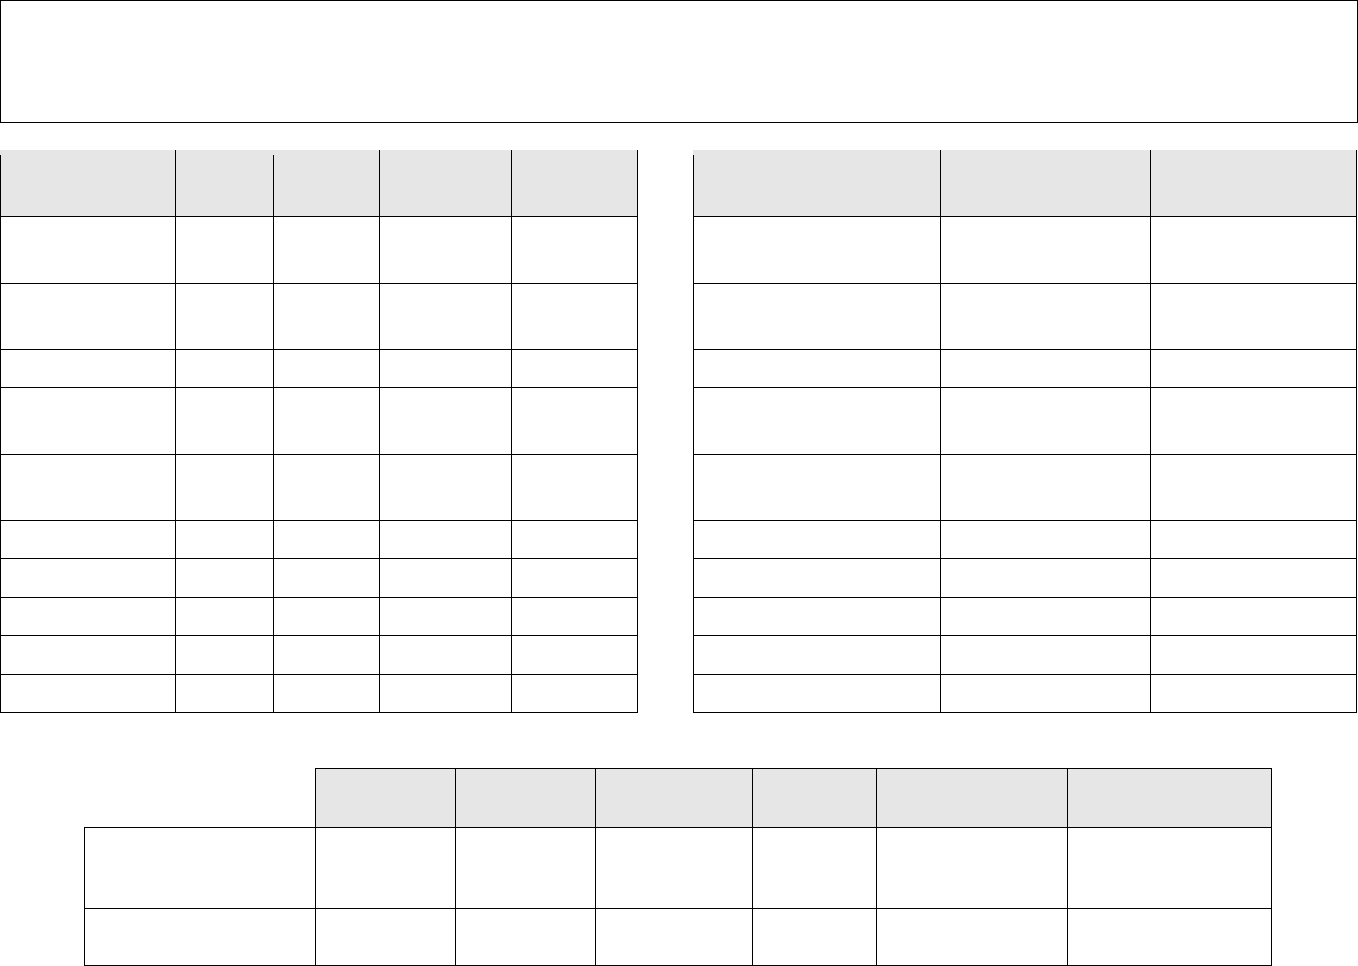 Sample paycheck stub template